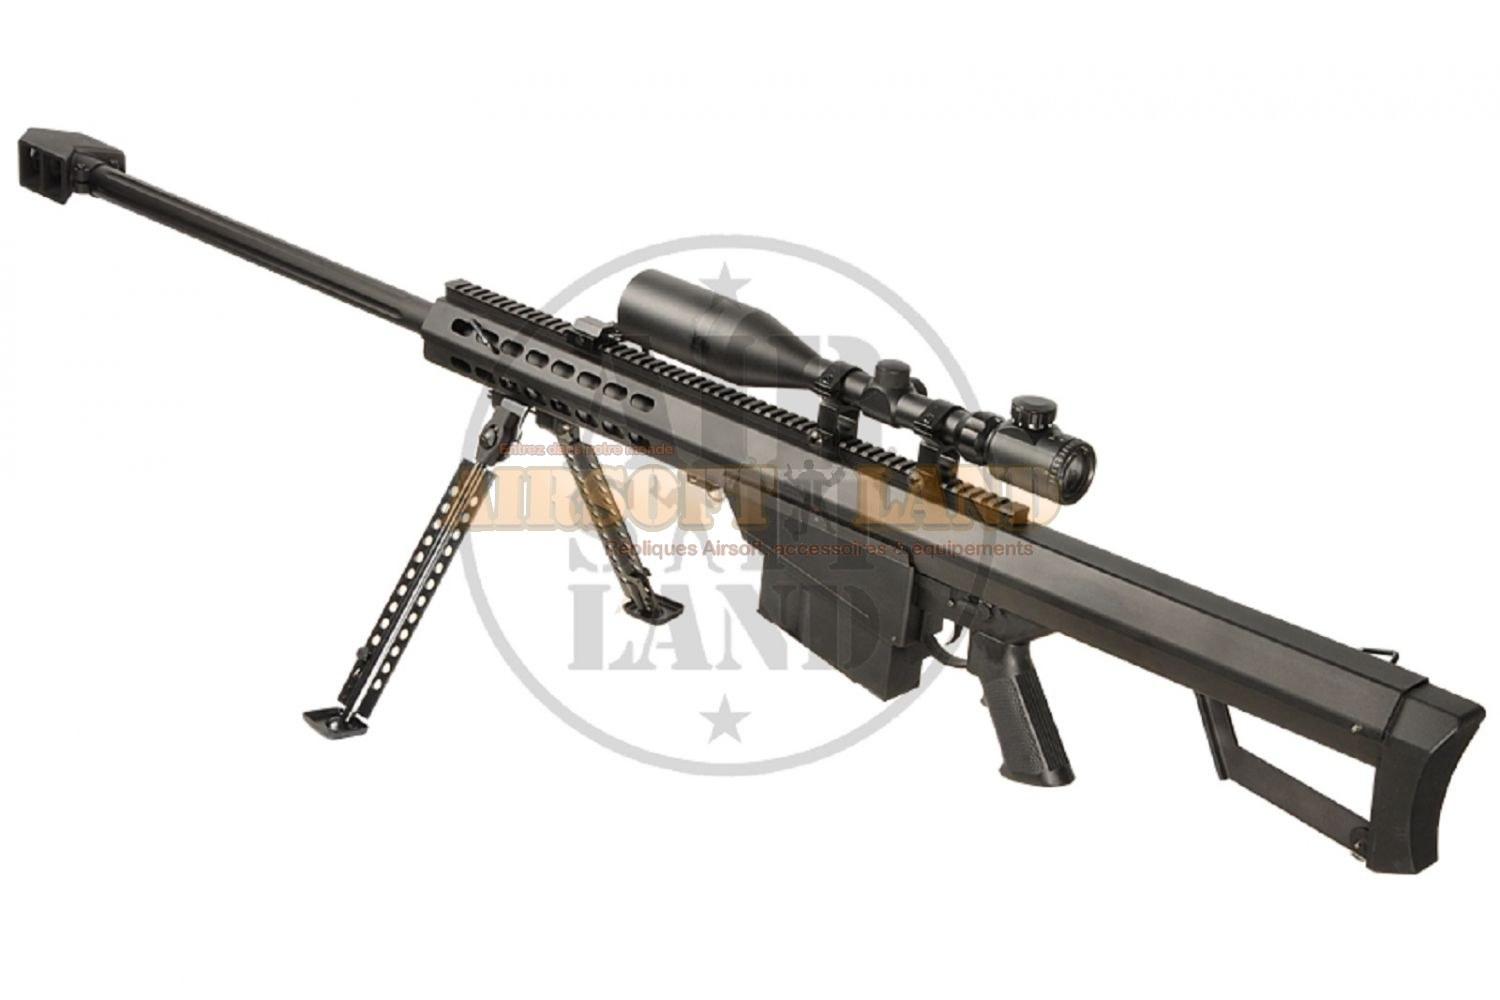 Barrett M82A1 snow wolf aeg full metal noir